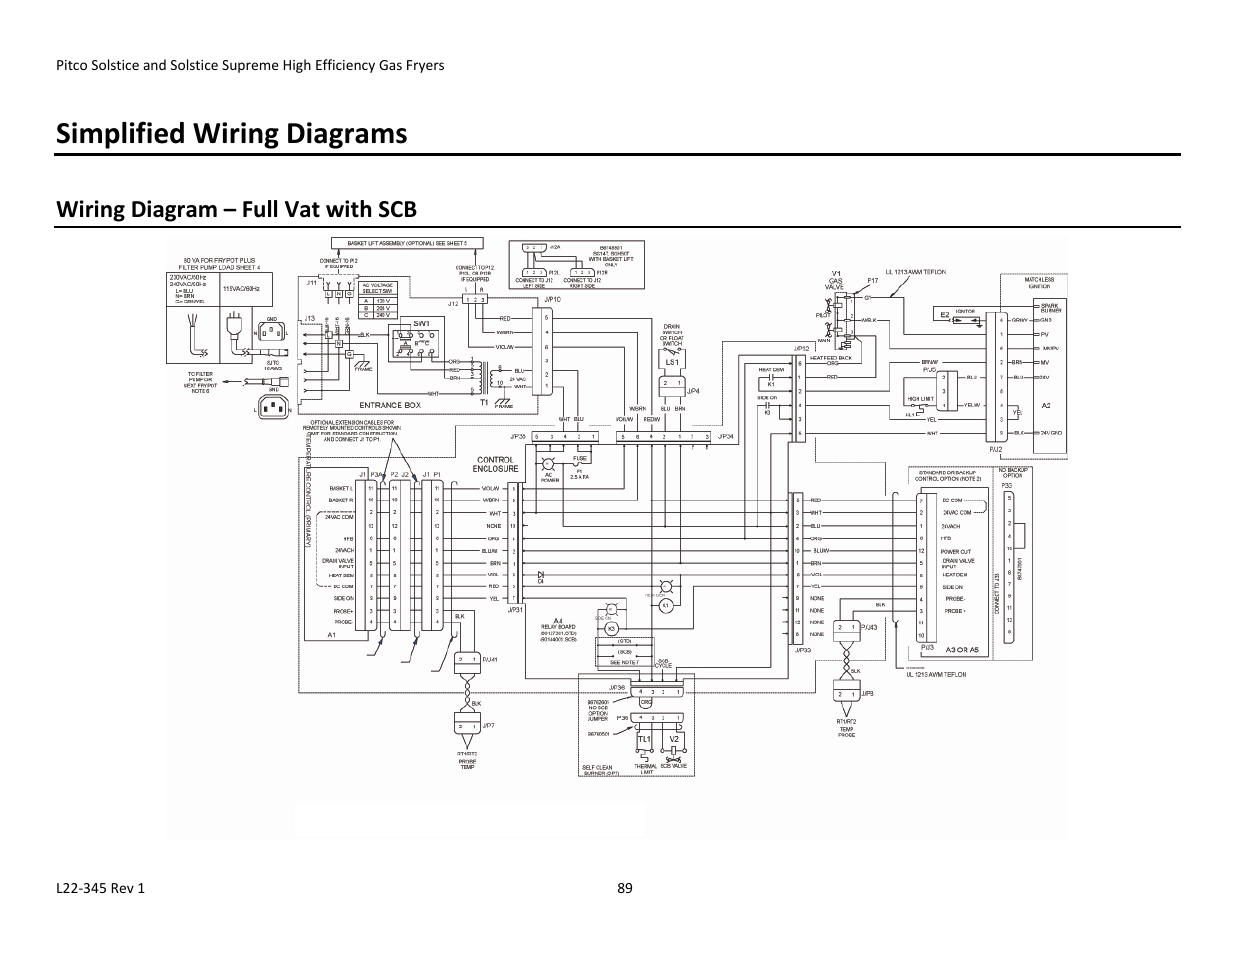 Simplified wiring diagrams, Wiring diagram